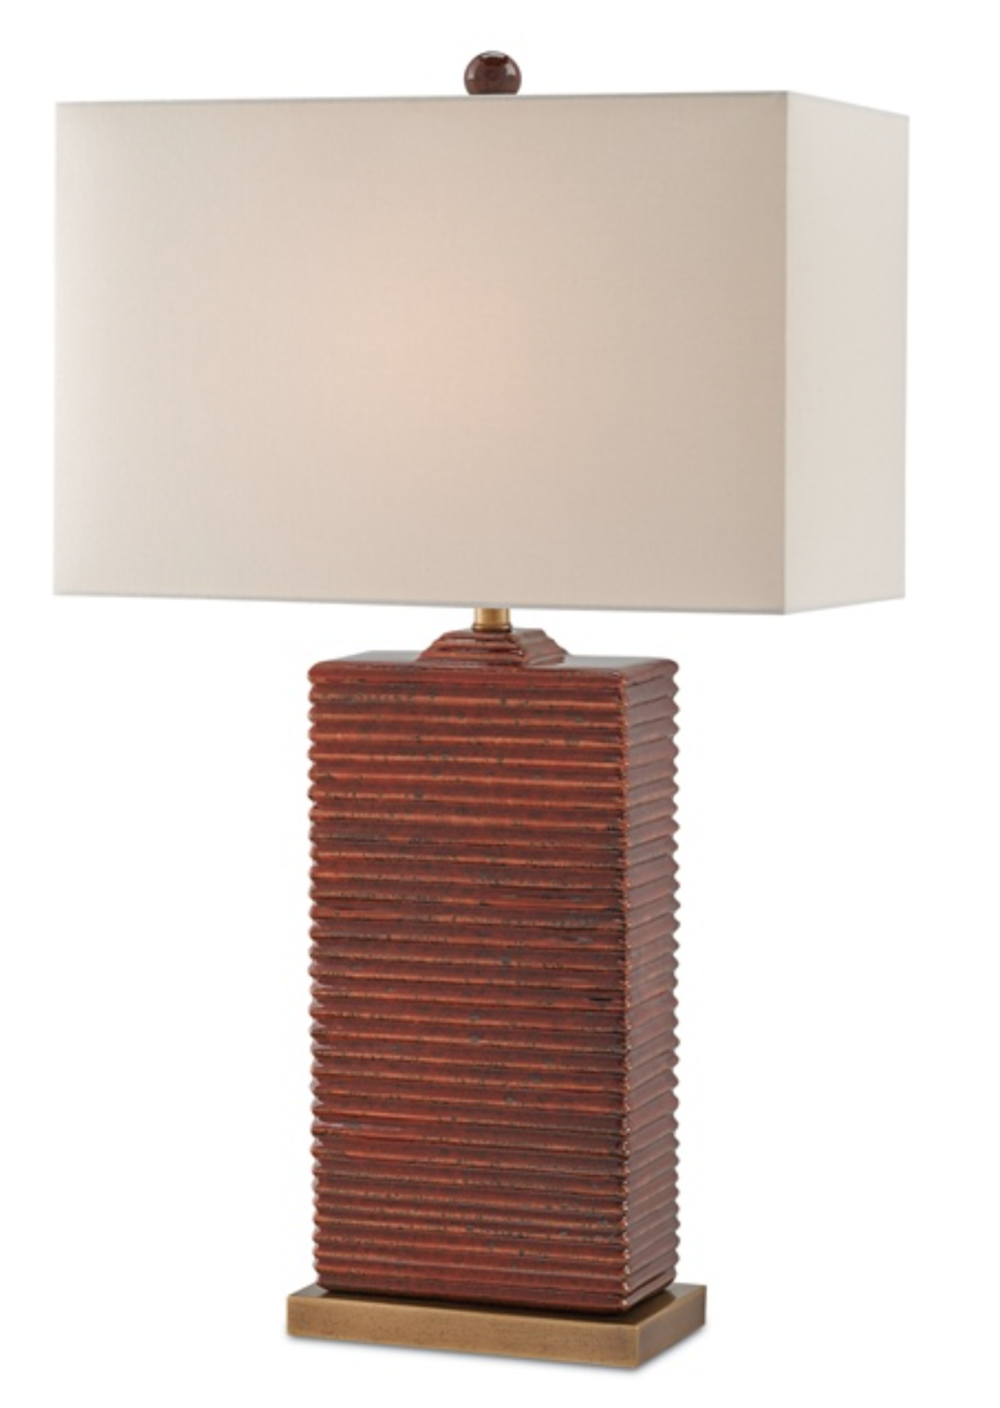 Ribbed Mottled Red Ceramic/Brass Table Lamp w/Linen Shade  18x10x31h  CC6912